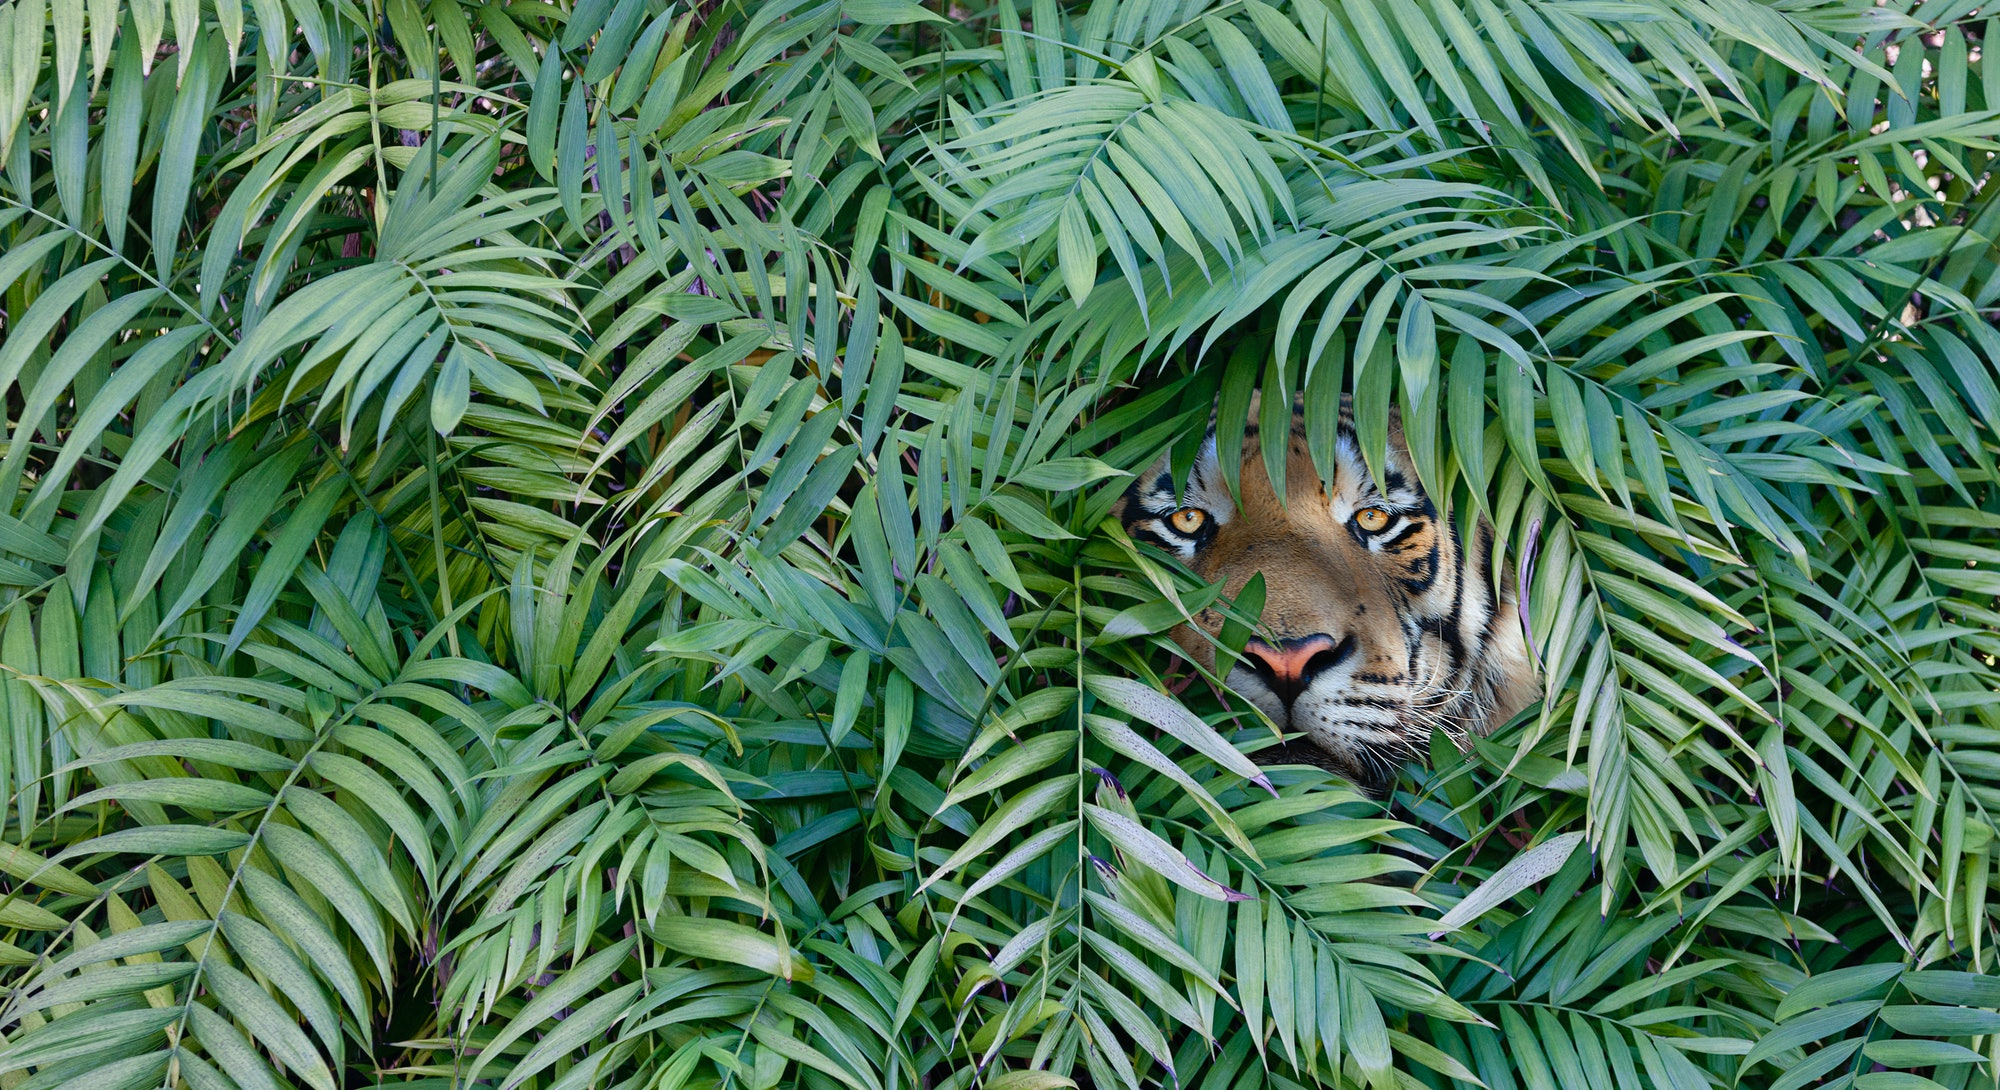 Tiger hiding in forest